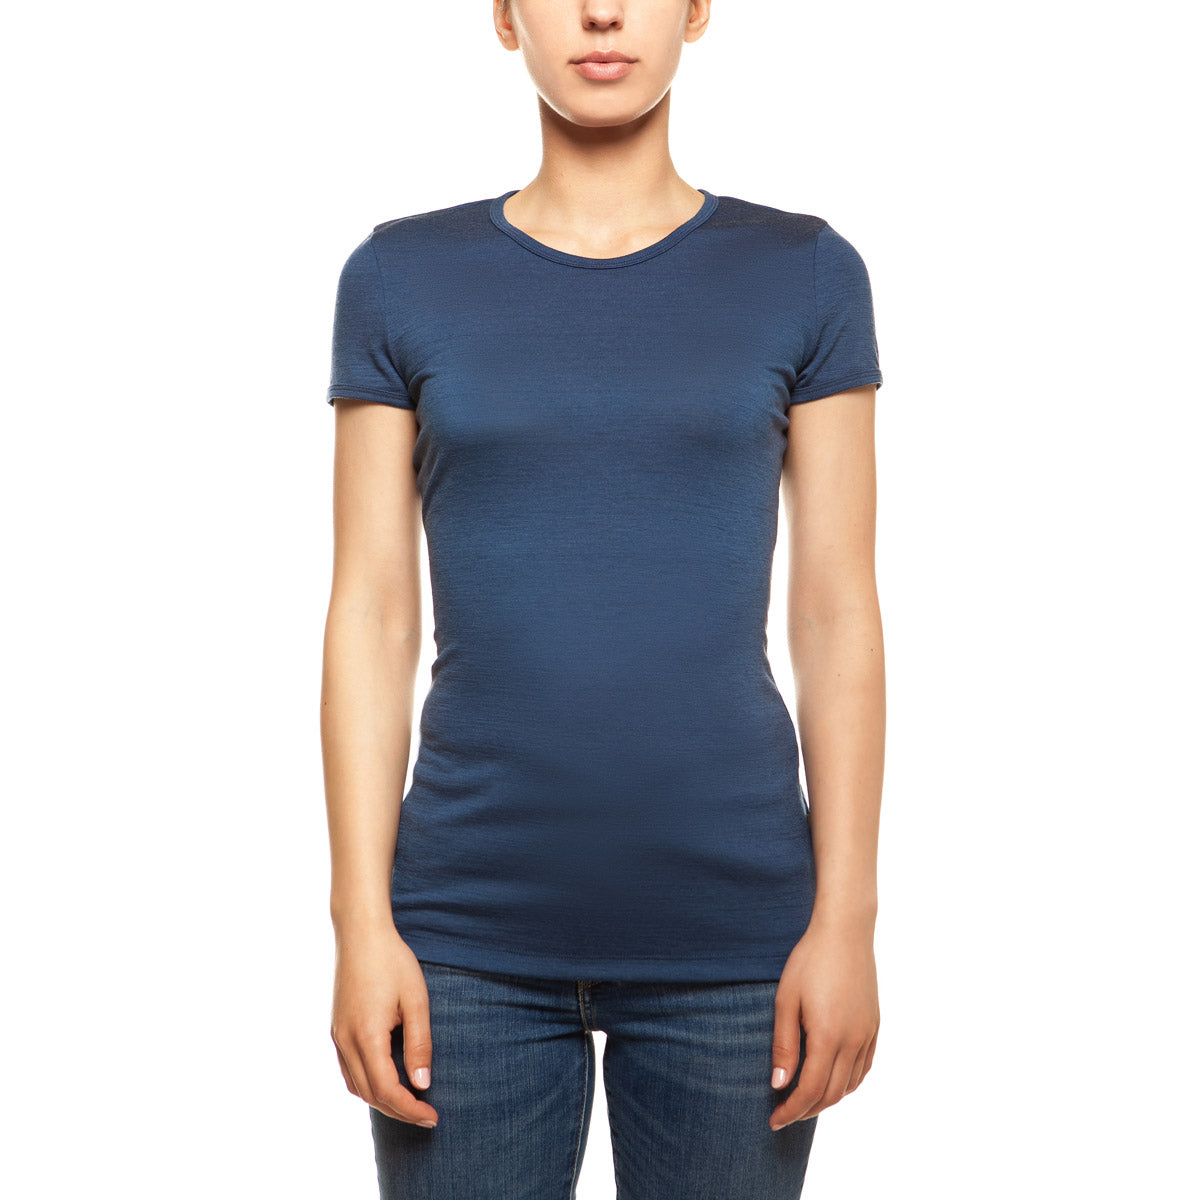 menique Women's Merino 160 Short Sleeve Crew Denim Color